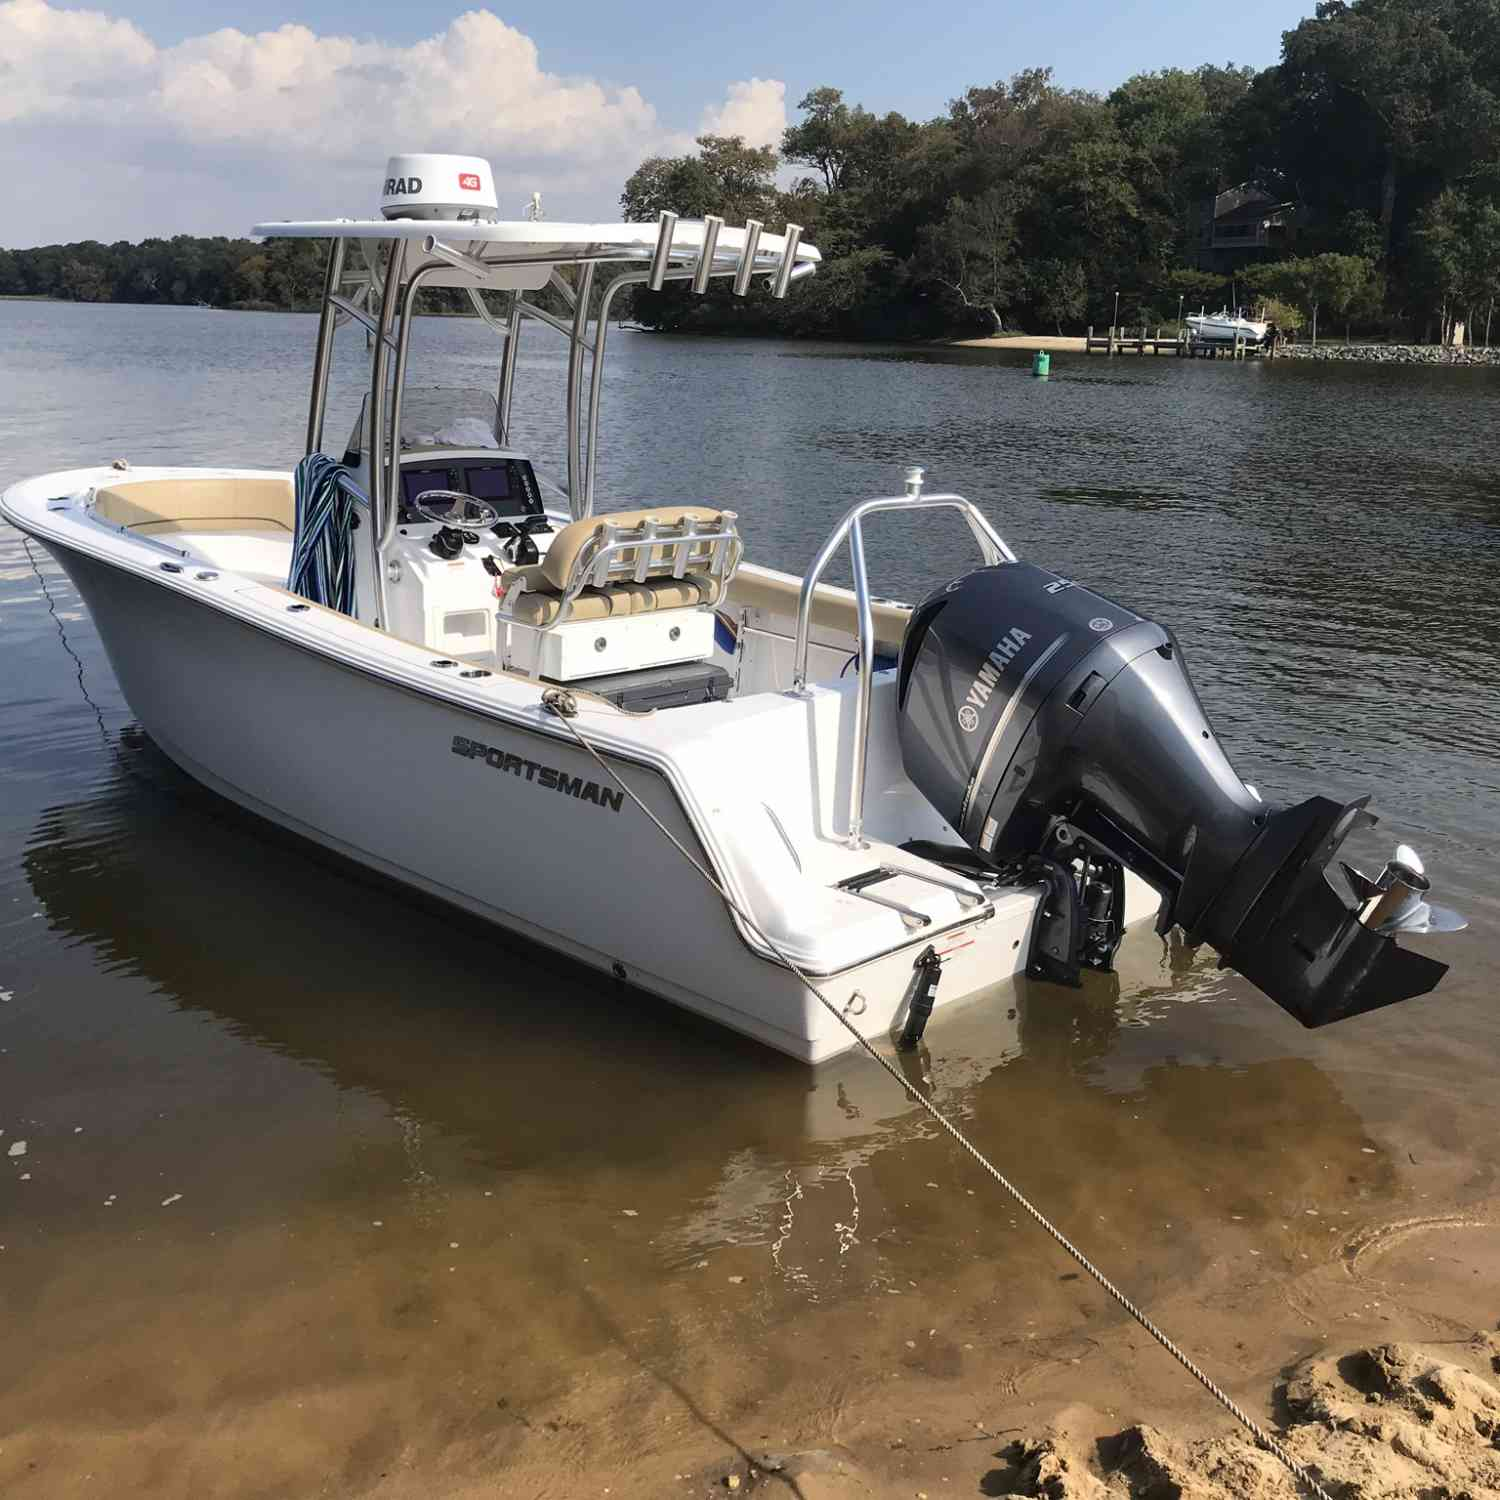 Title: Can't wait for summer - On board their Sportsman Heritage 231 Center Console - Location: Still Pond MD. Participating in the Photo Contest #SportsmanMay2020